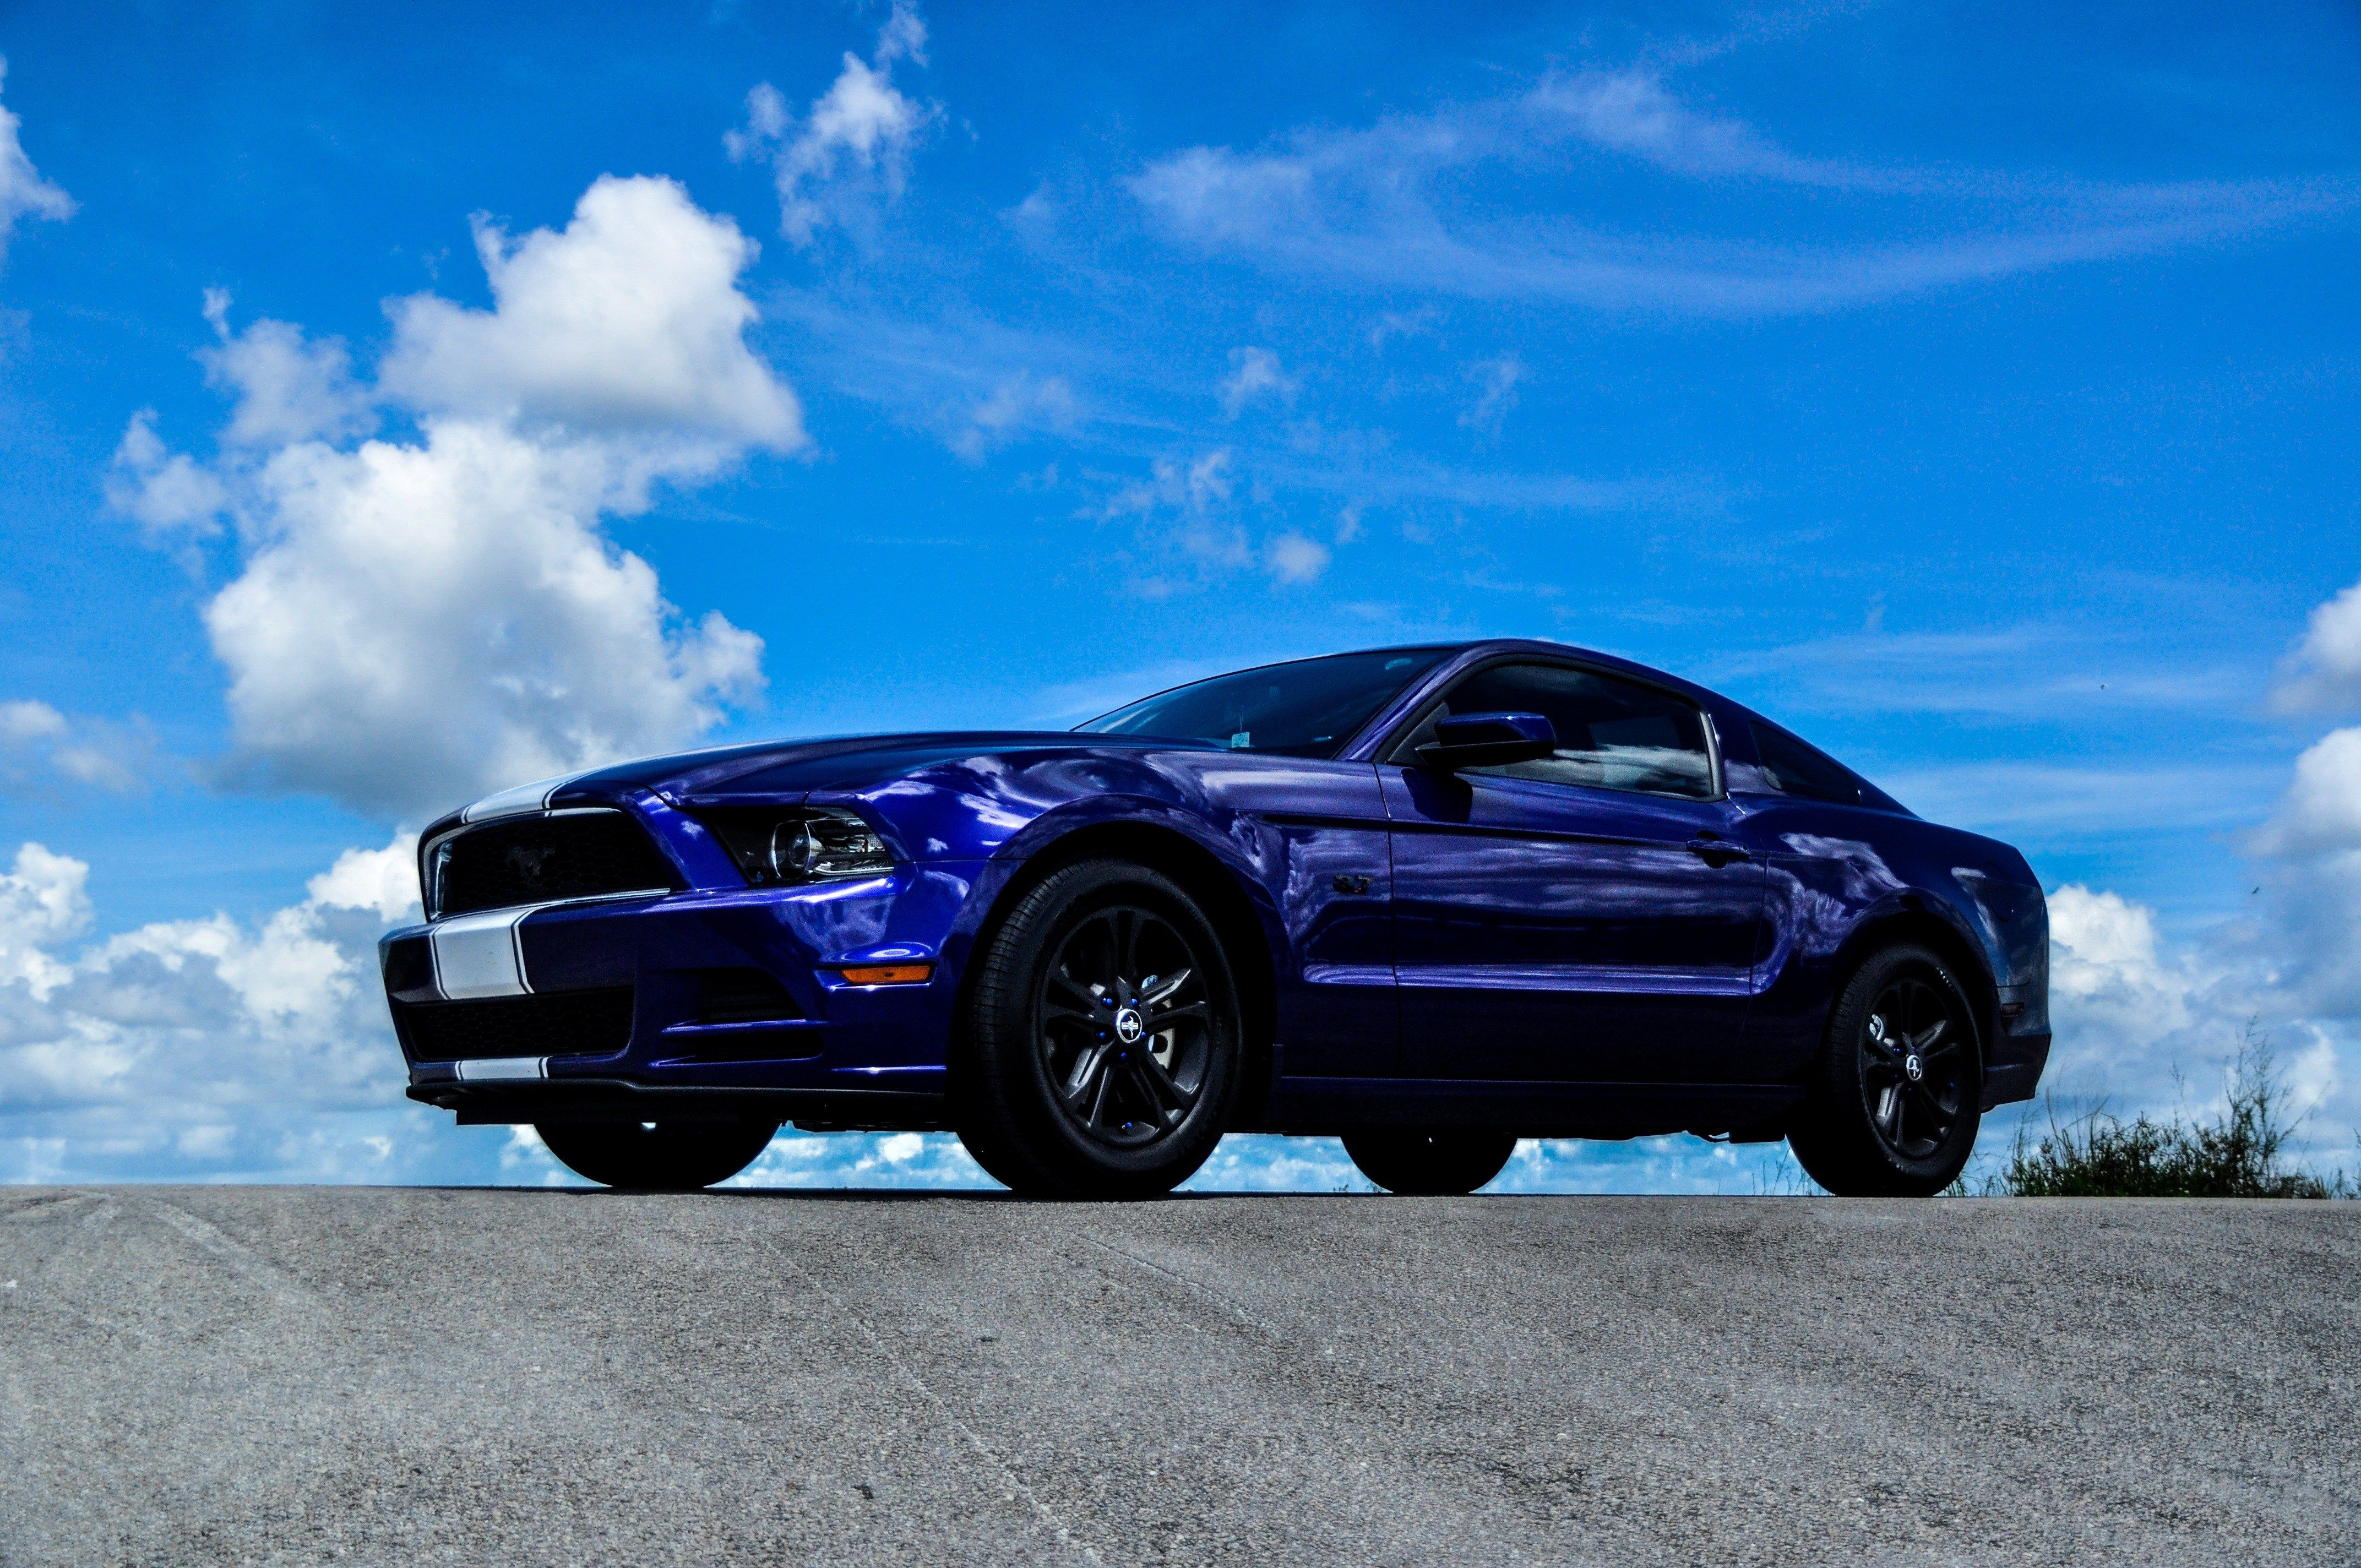 4k ford mustang 4288x2848 auta